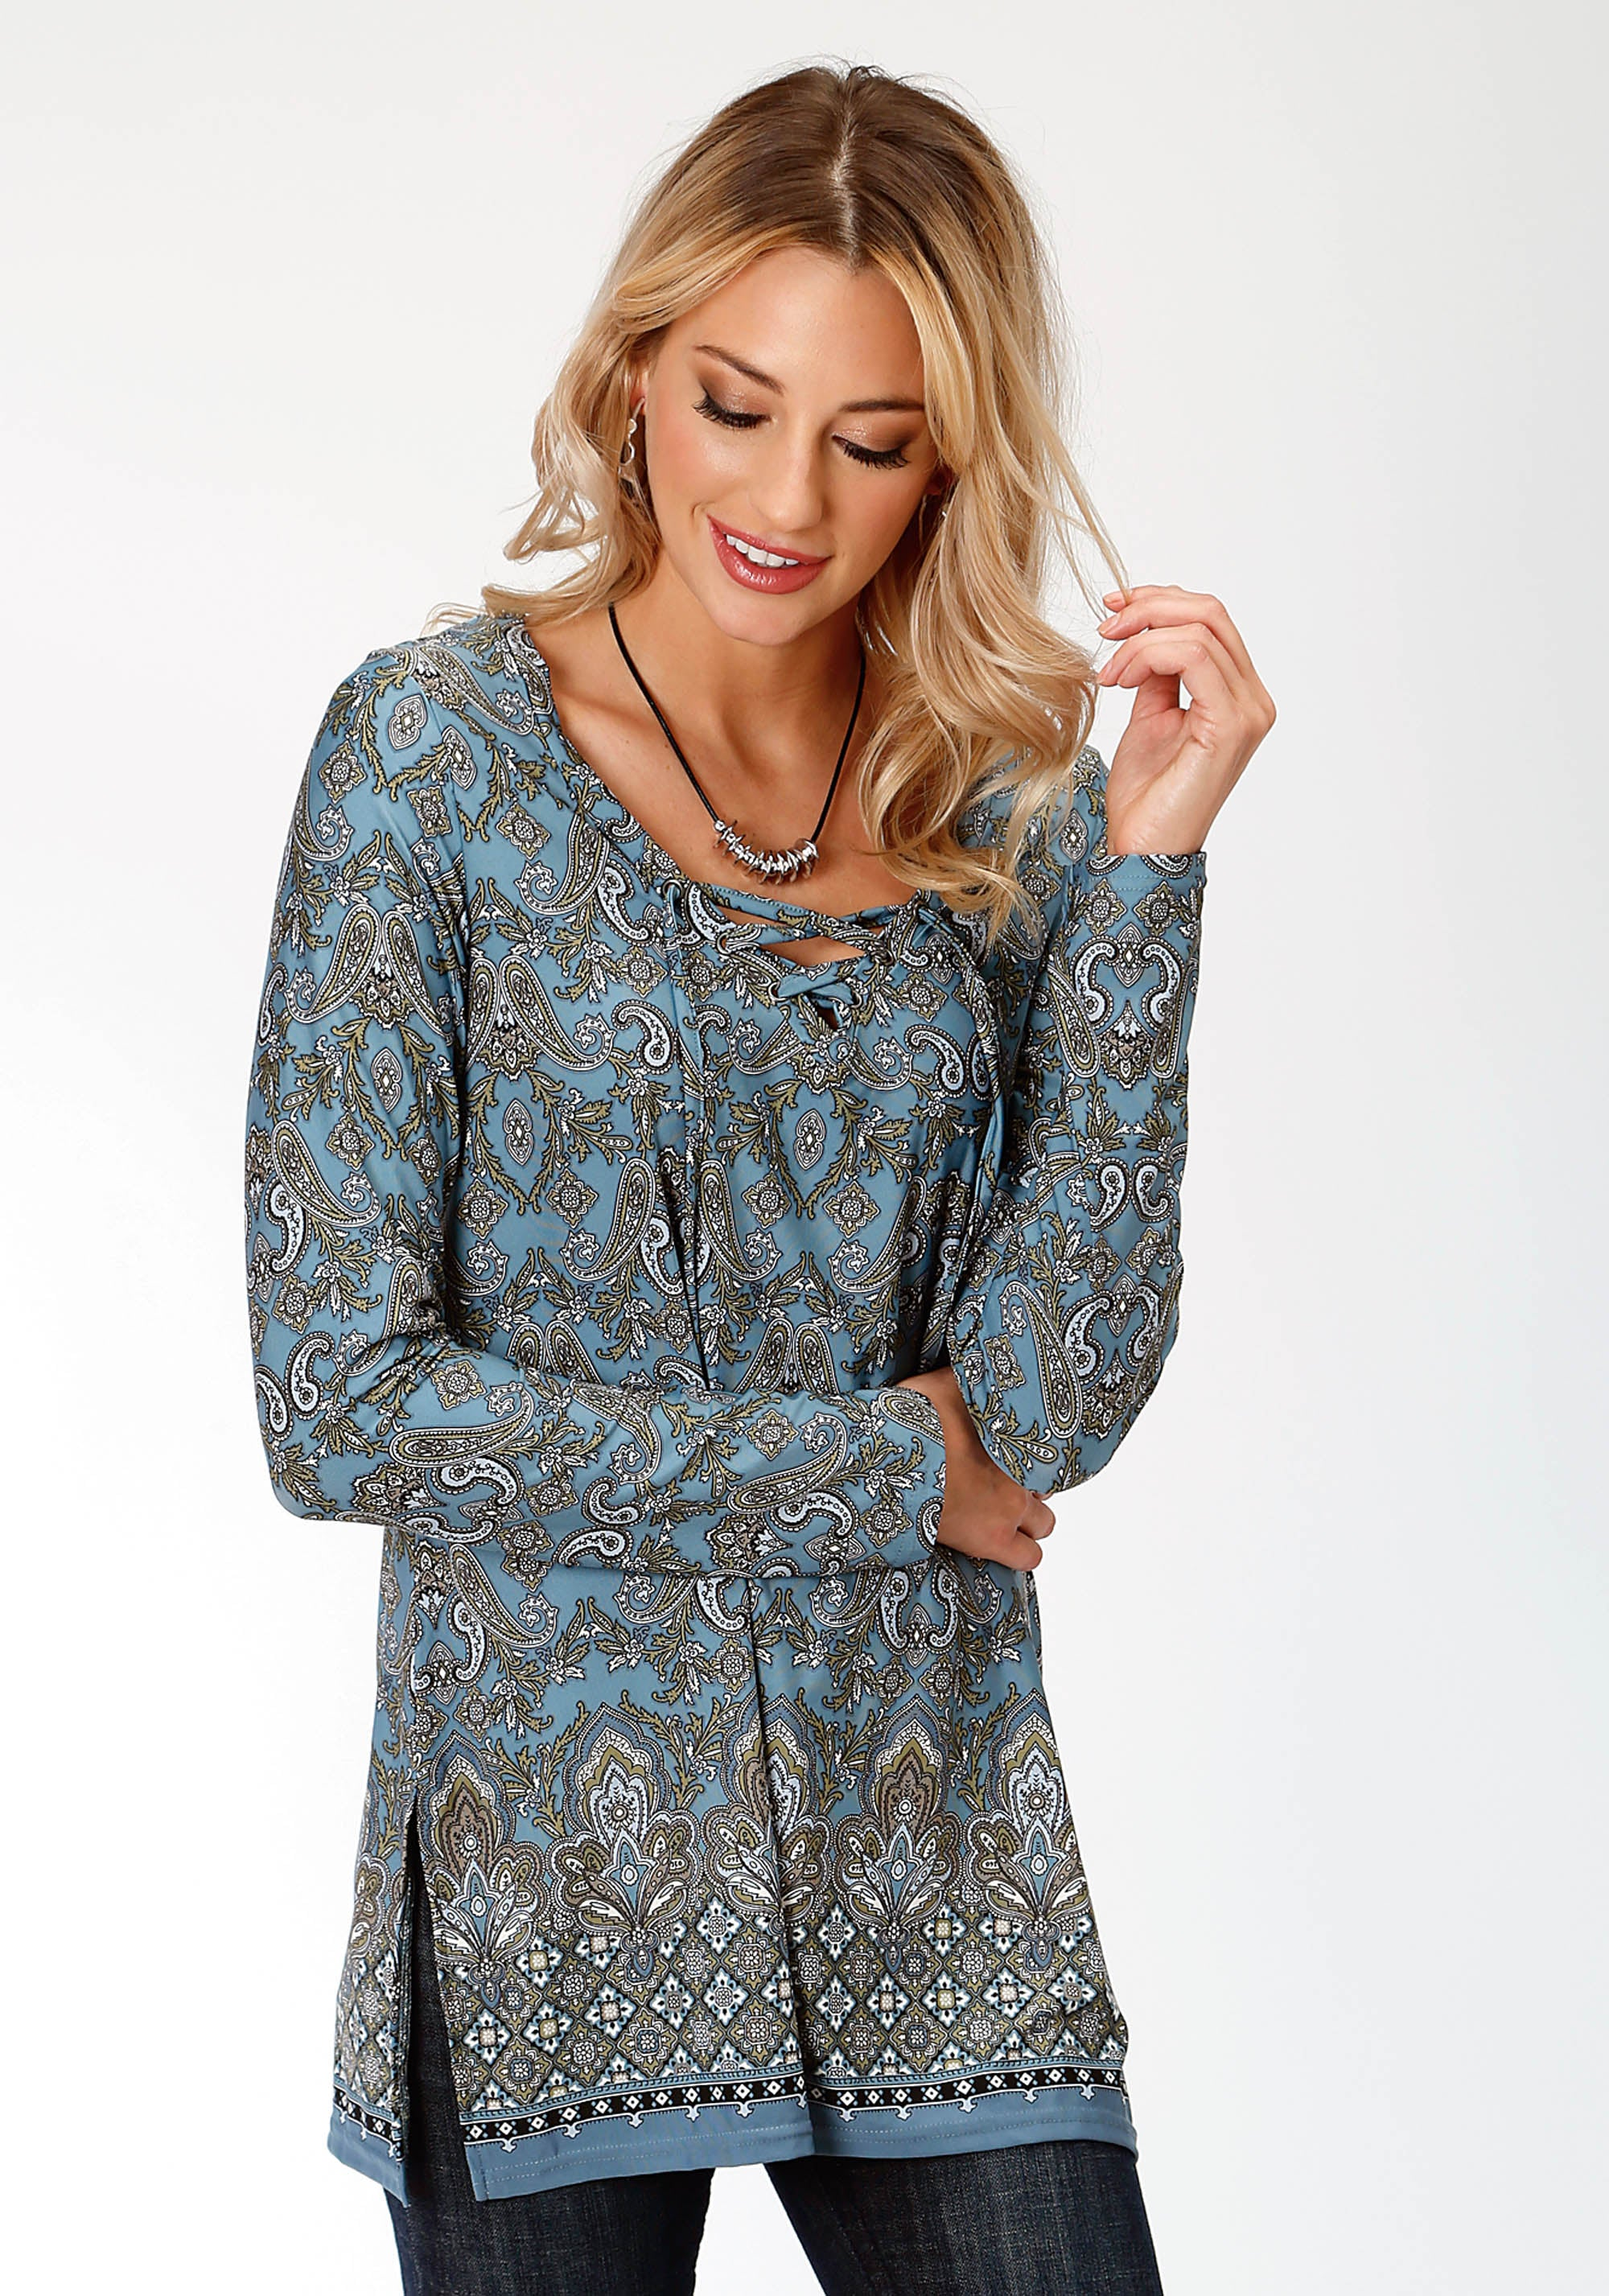 ROPER WOMENS BLUE 9501 BORDER PRT POLY SPAN JERSEY TUNIC STUDIO WEST COLLECTION- AUTUMN MEADOW LONG SLEEVE